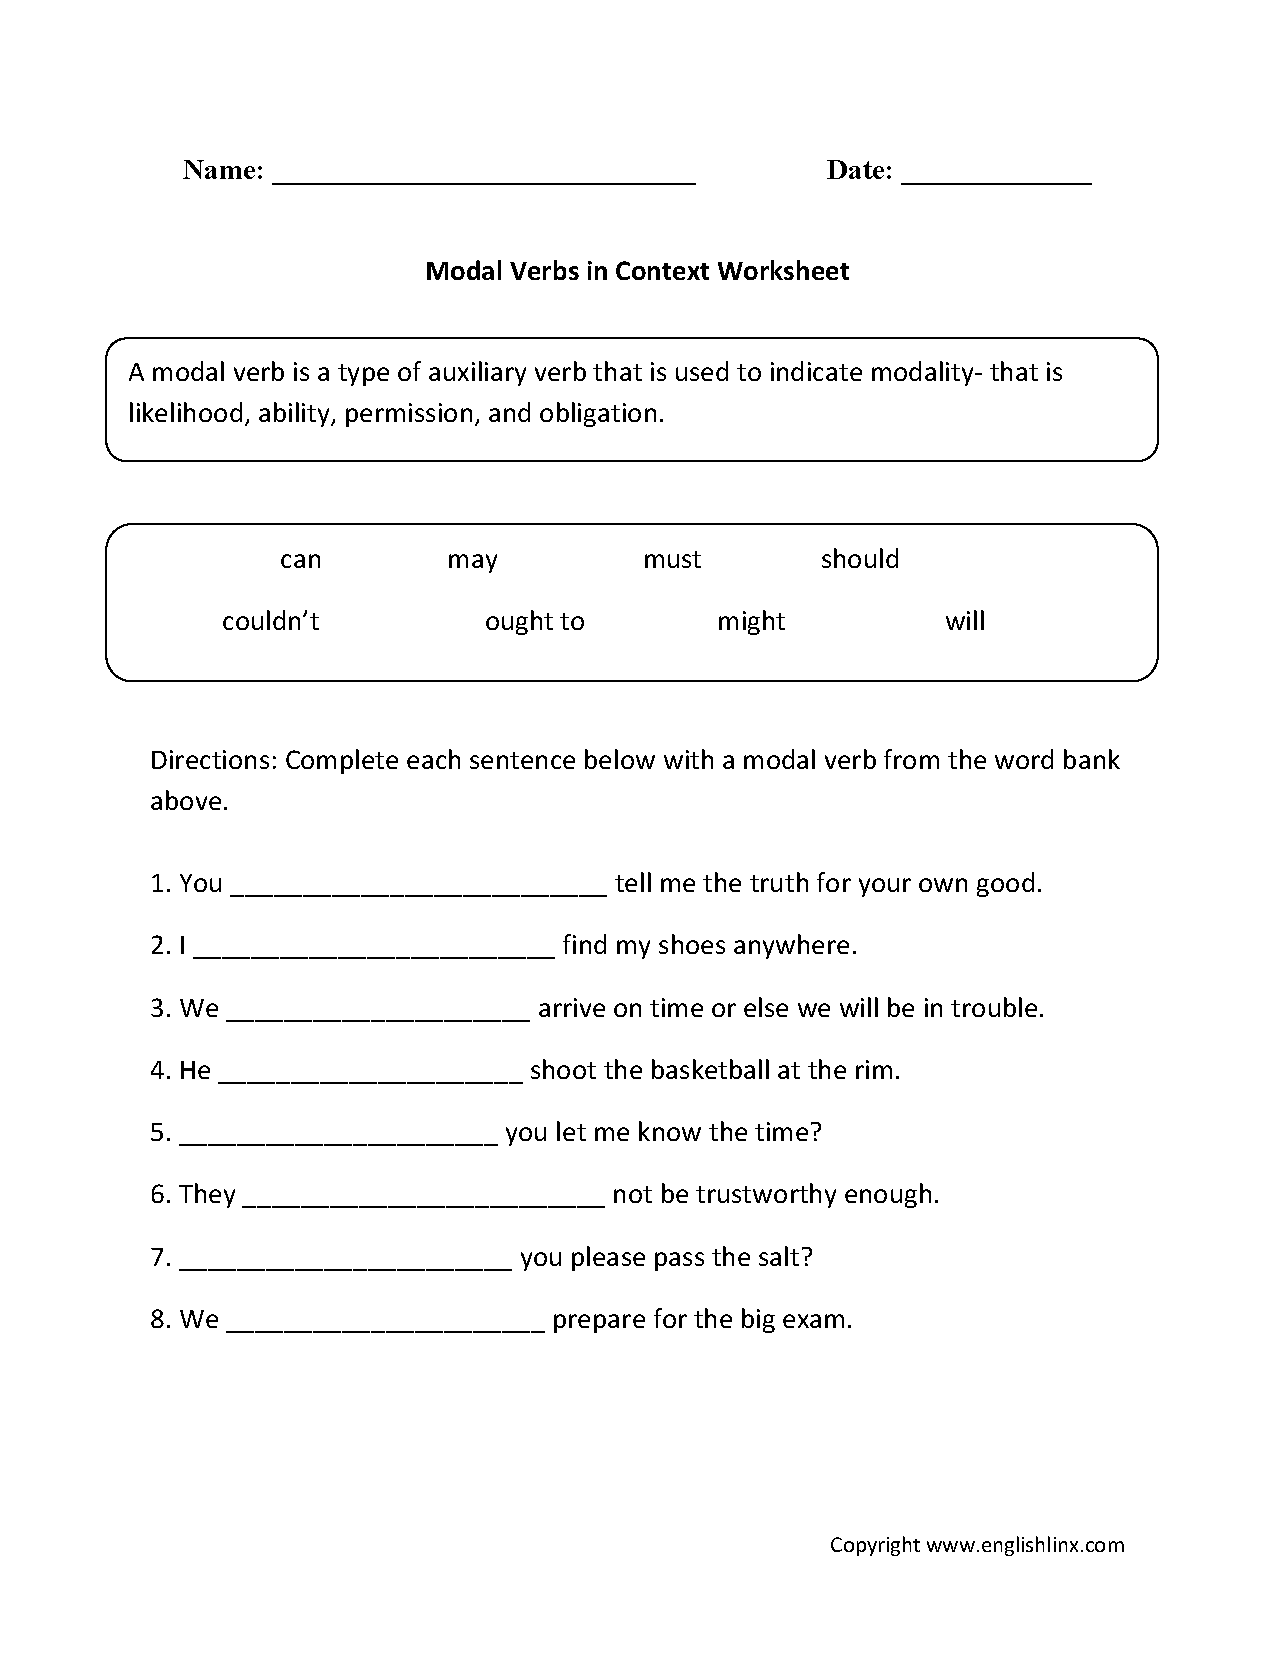 Modal Verbs In Context Worksheet With Images